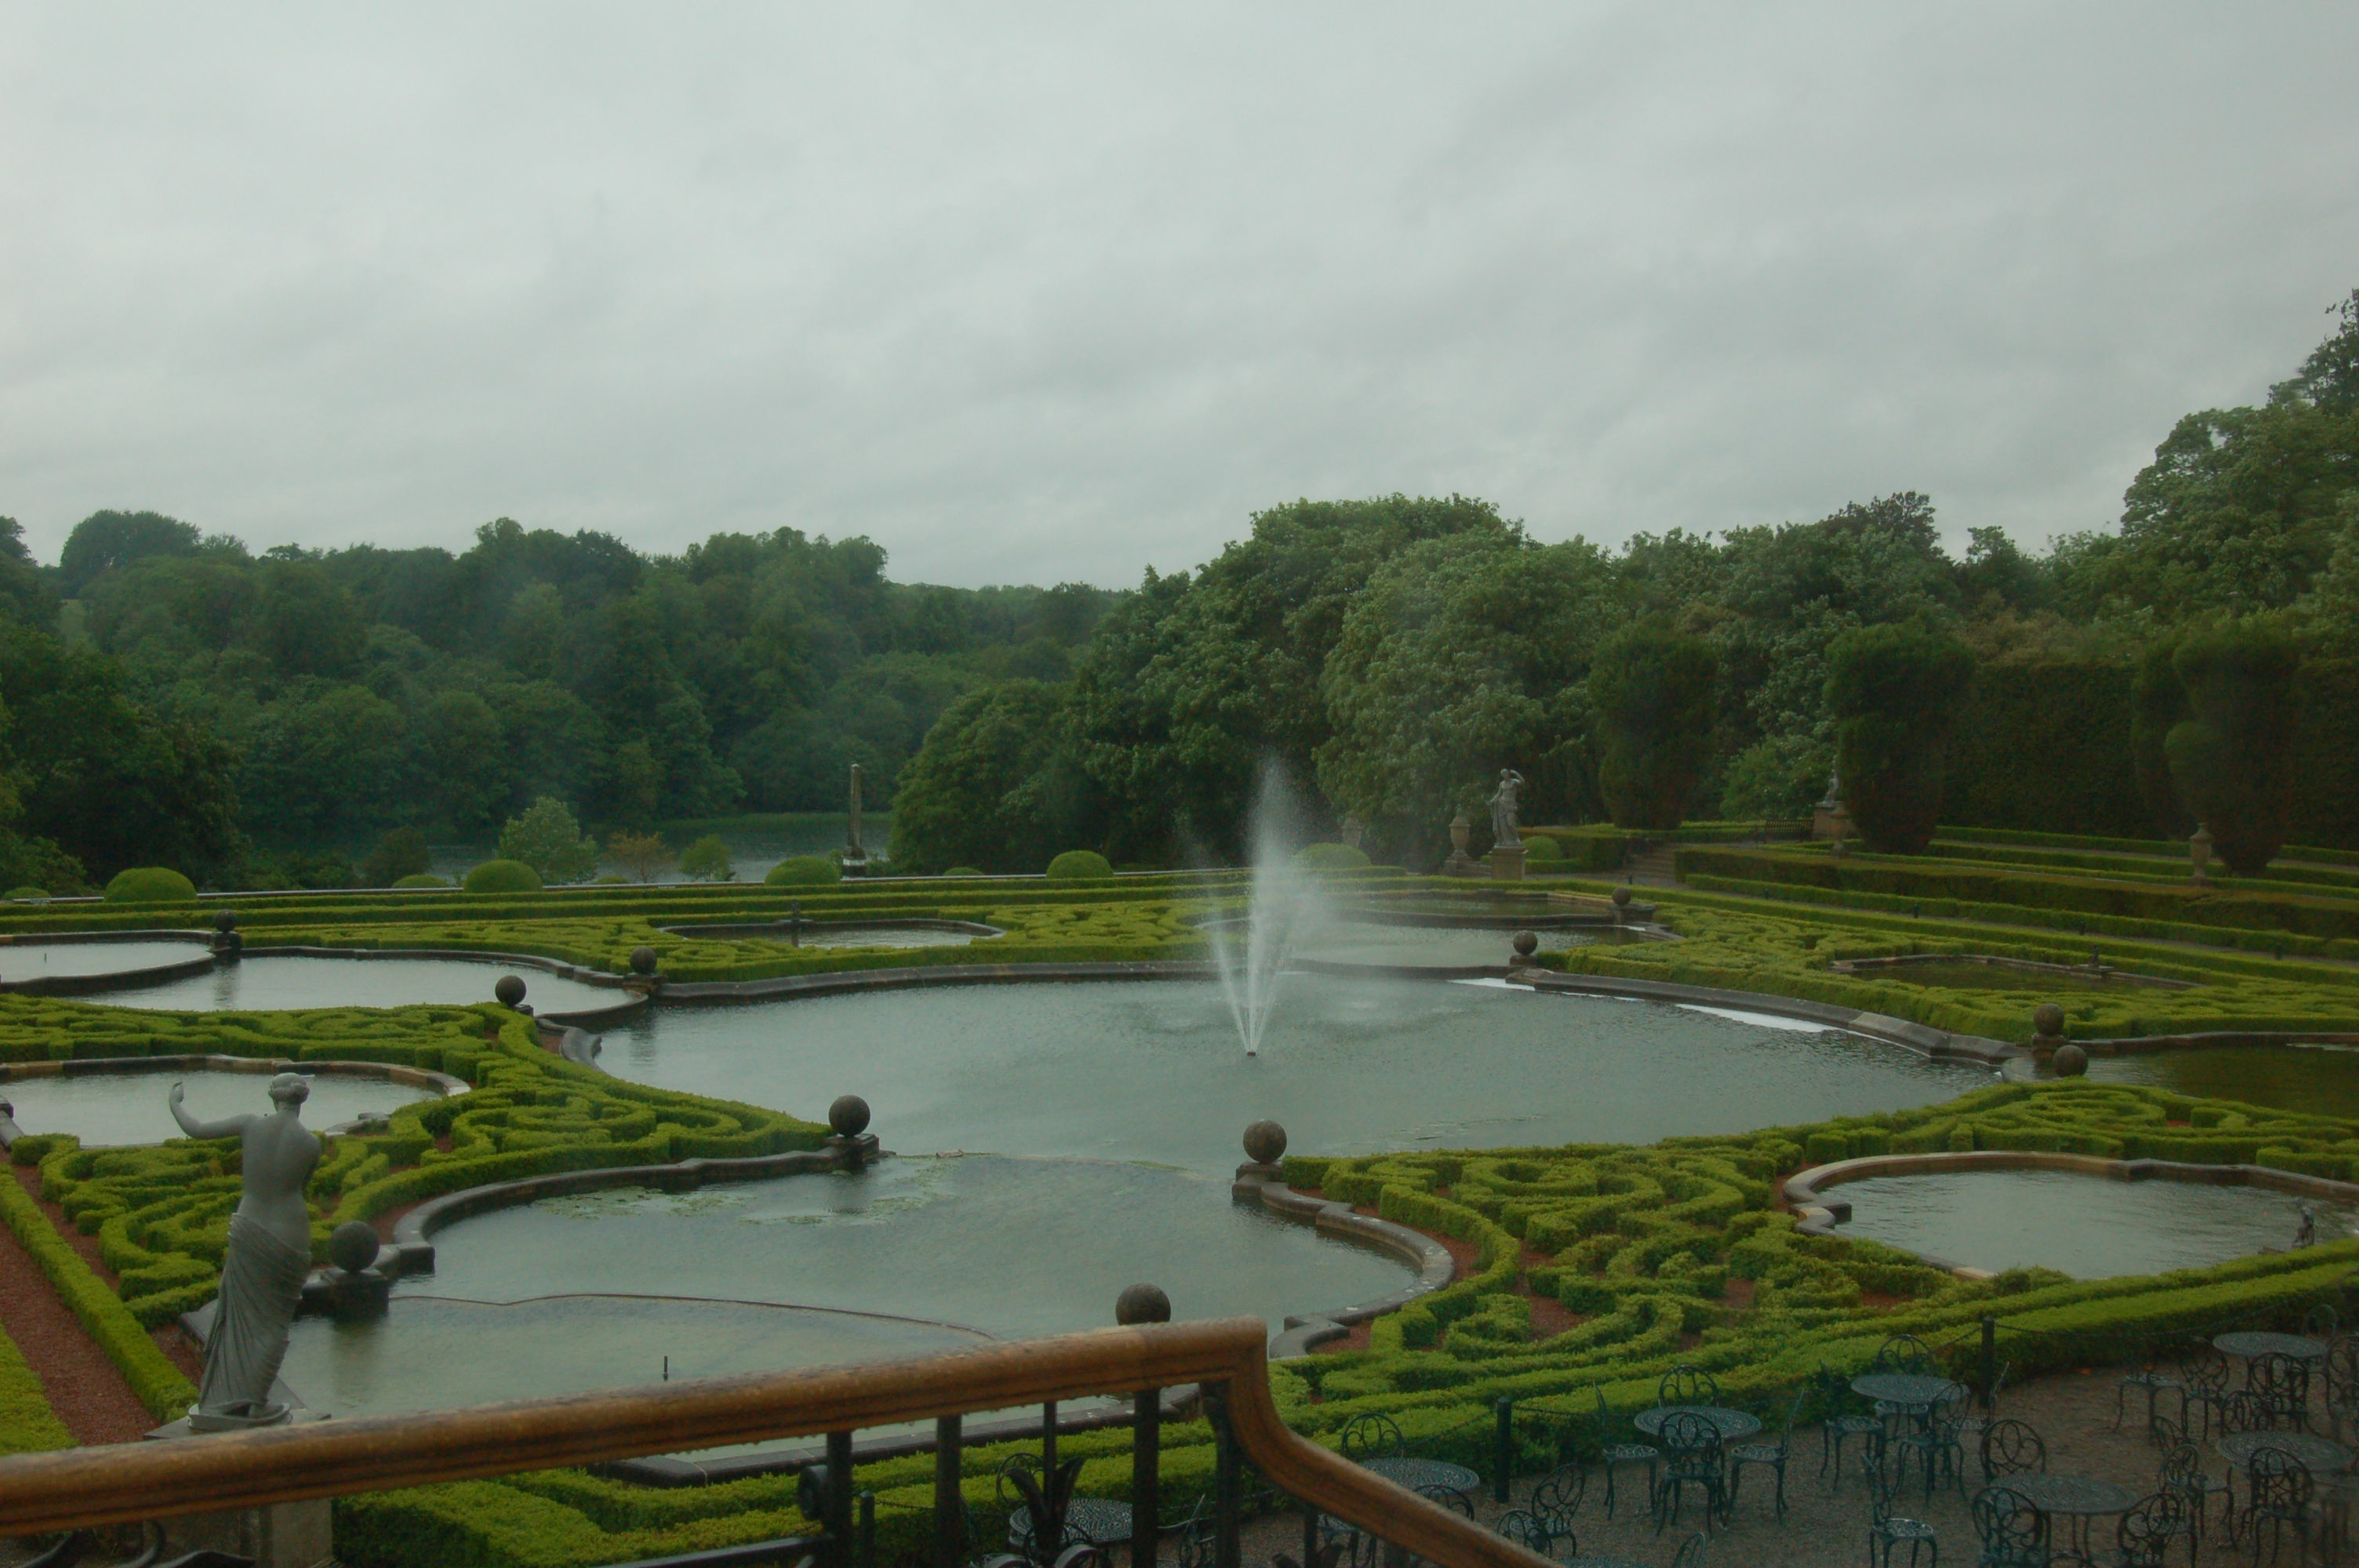 View of Blenheim Palace Gardens